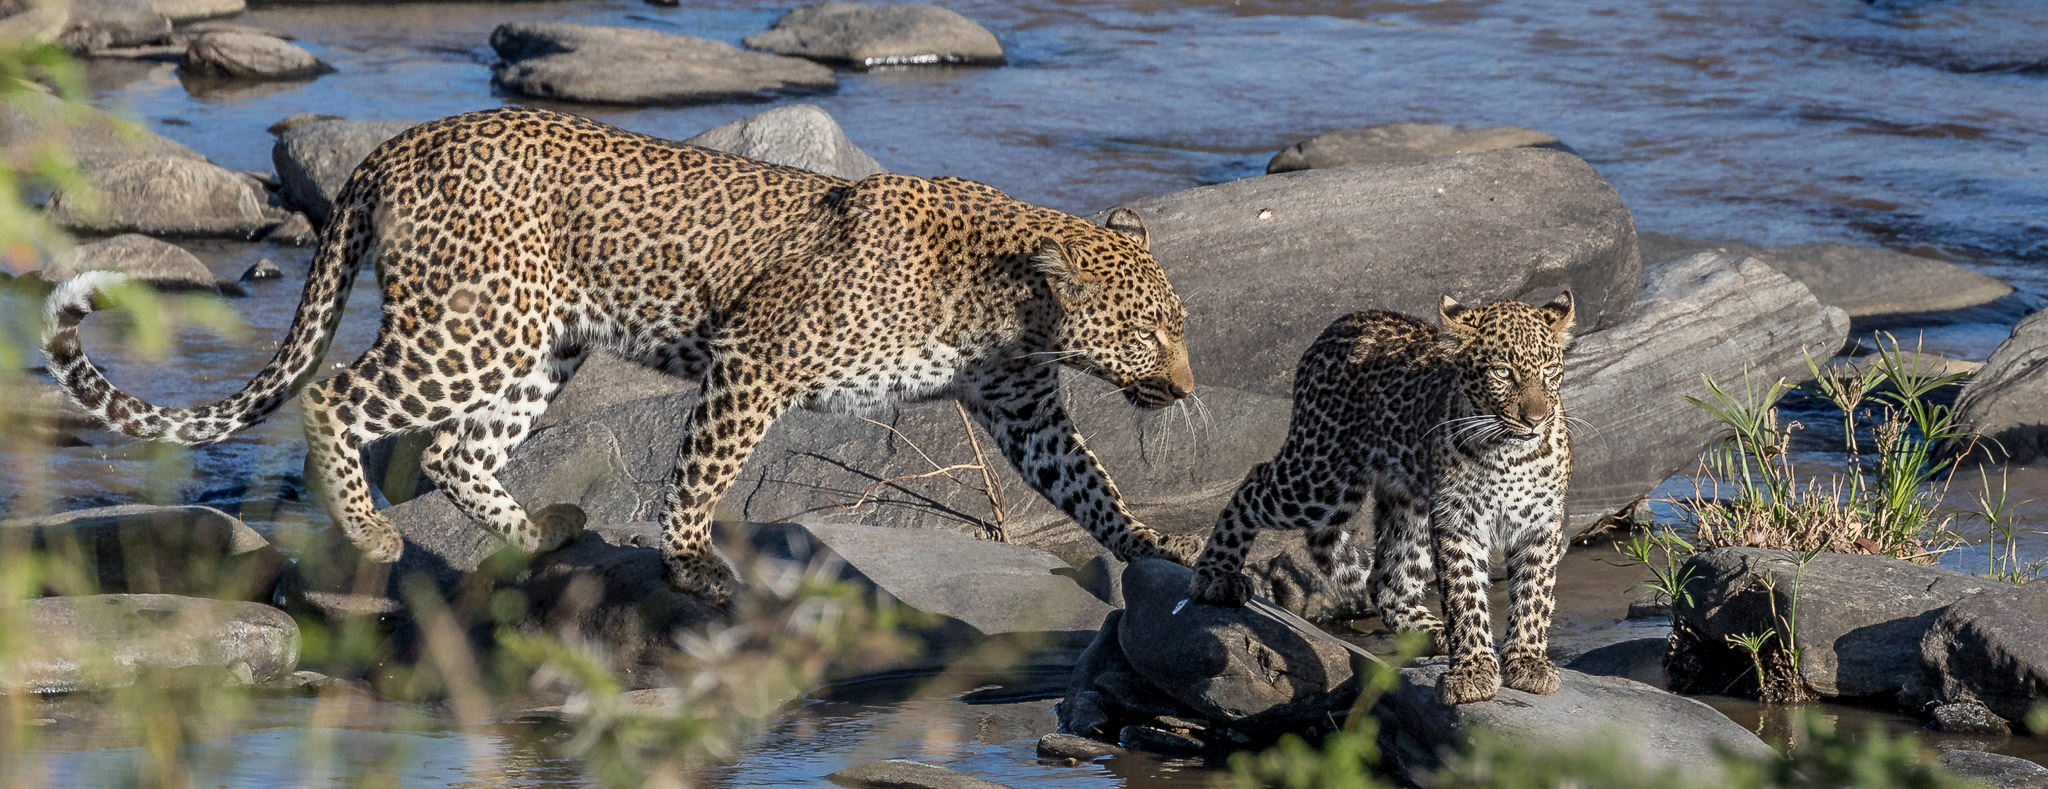 Leopard mother and cub by a river in the Maasai Mara